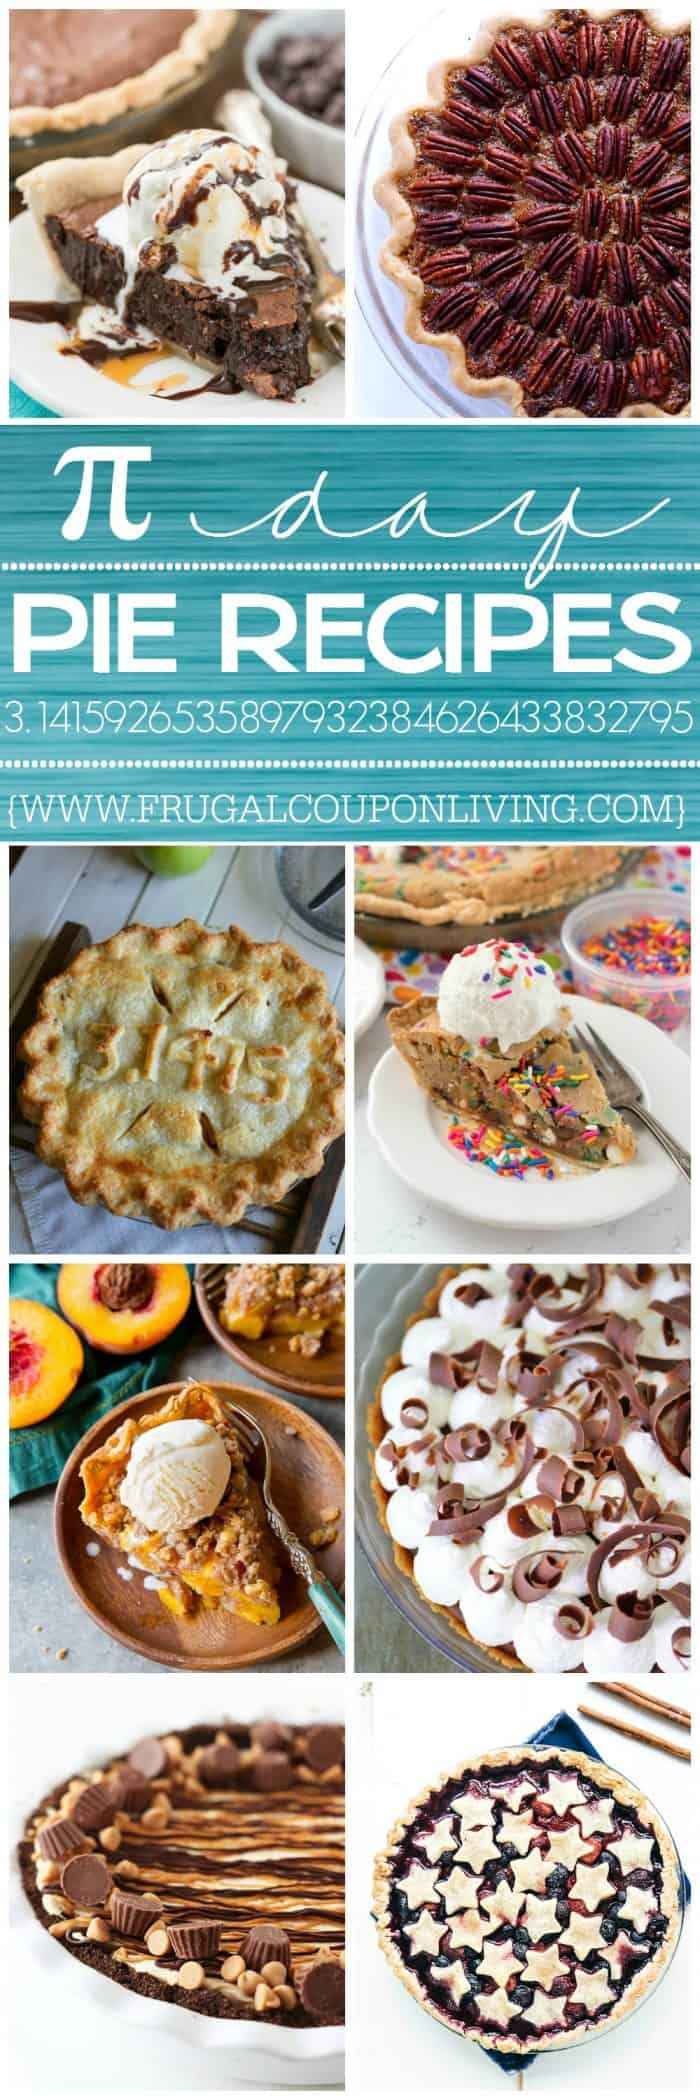 pi-day-recipes-pie-frugal-coupon-living-long